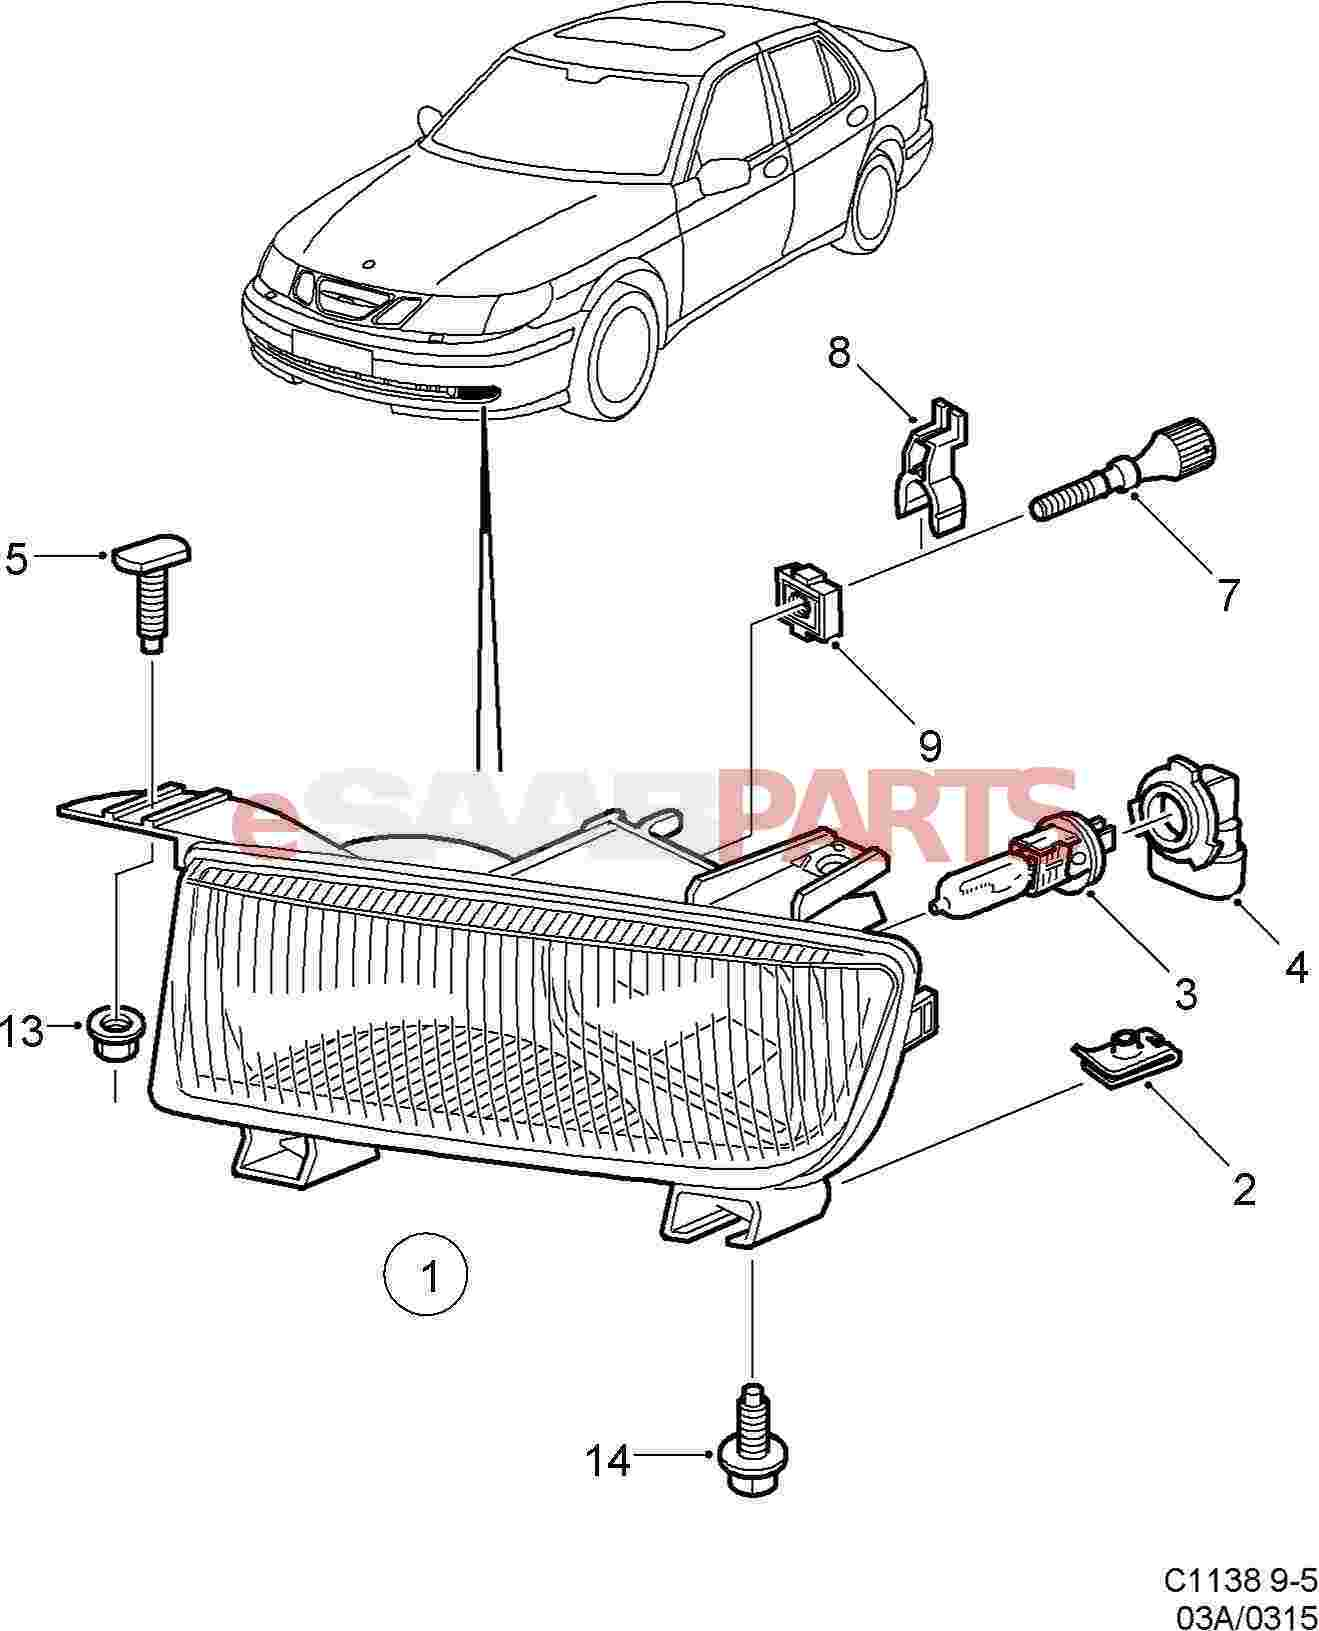 2004 Saab 9 3 Fog Light Wiring Diagram 2004 Chrysler